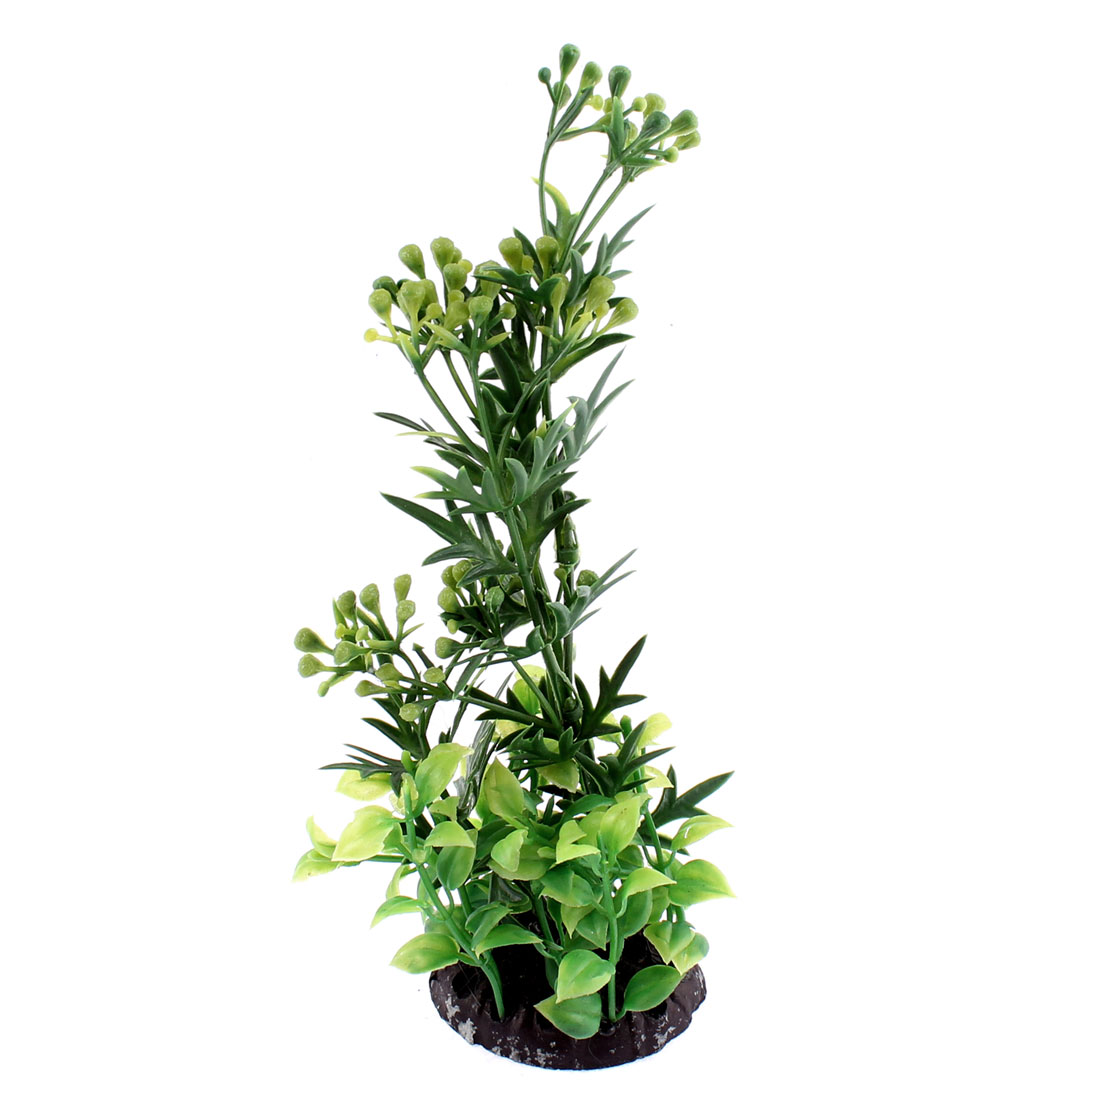 Aquarium Plastic Aquascaping Underwater Plant Decor Green